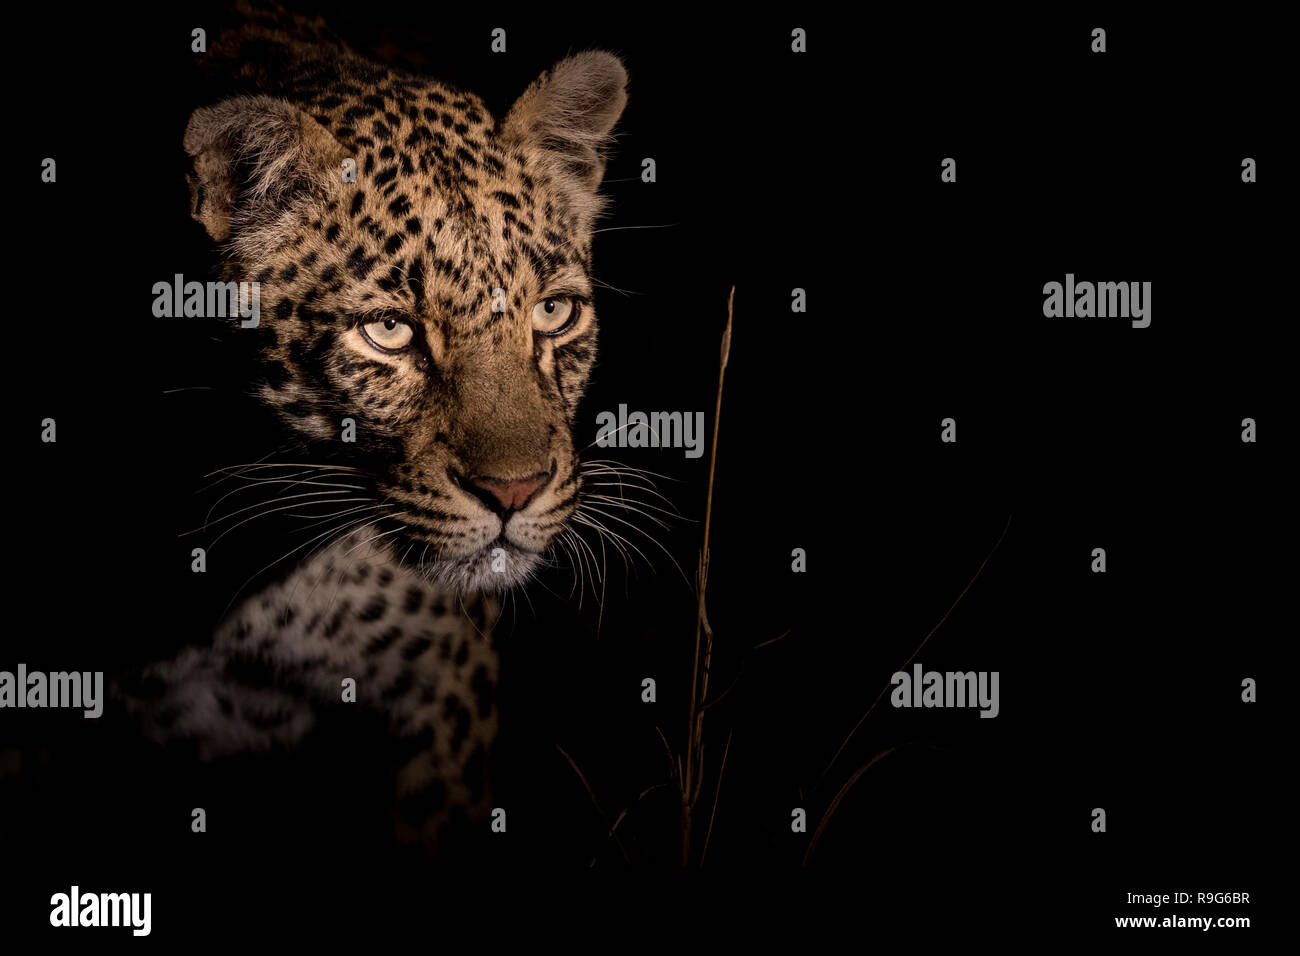 Elusive leopard at night - Stock Image